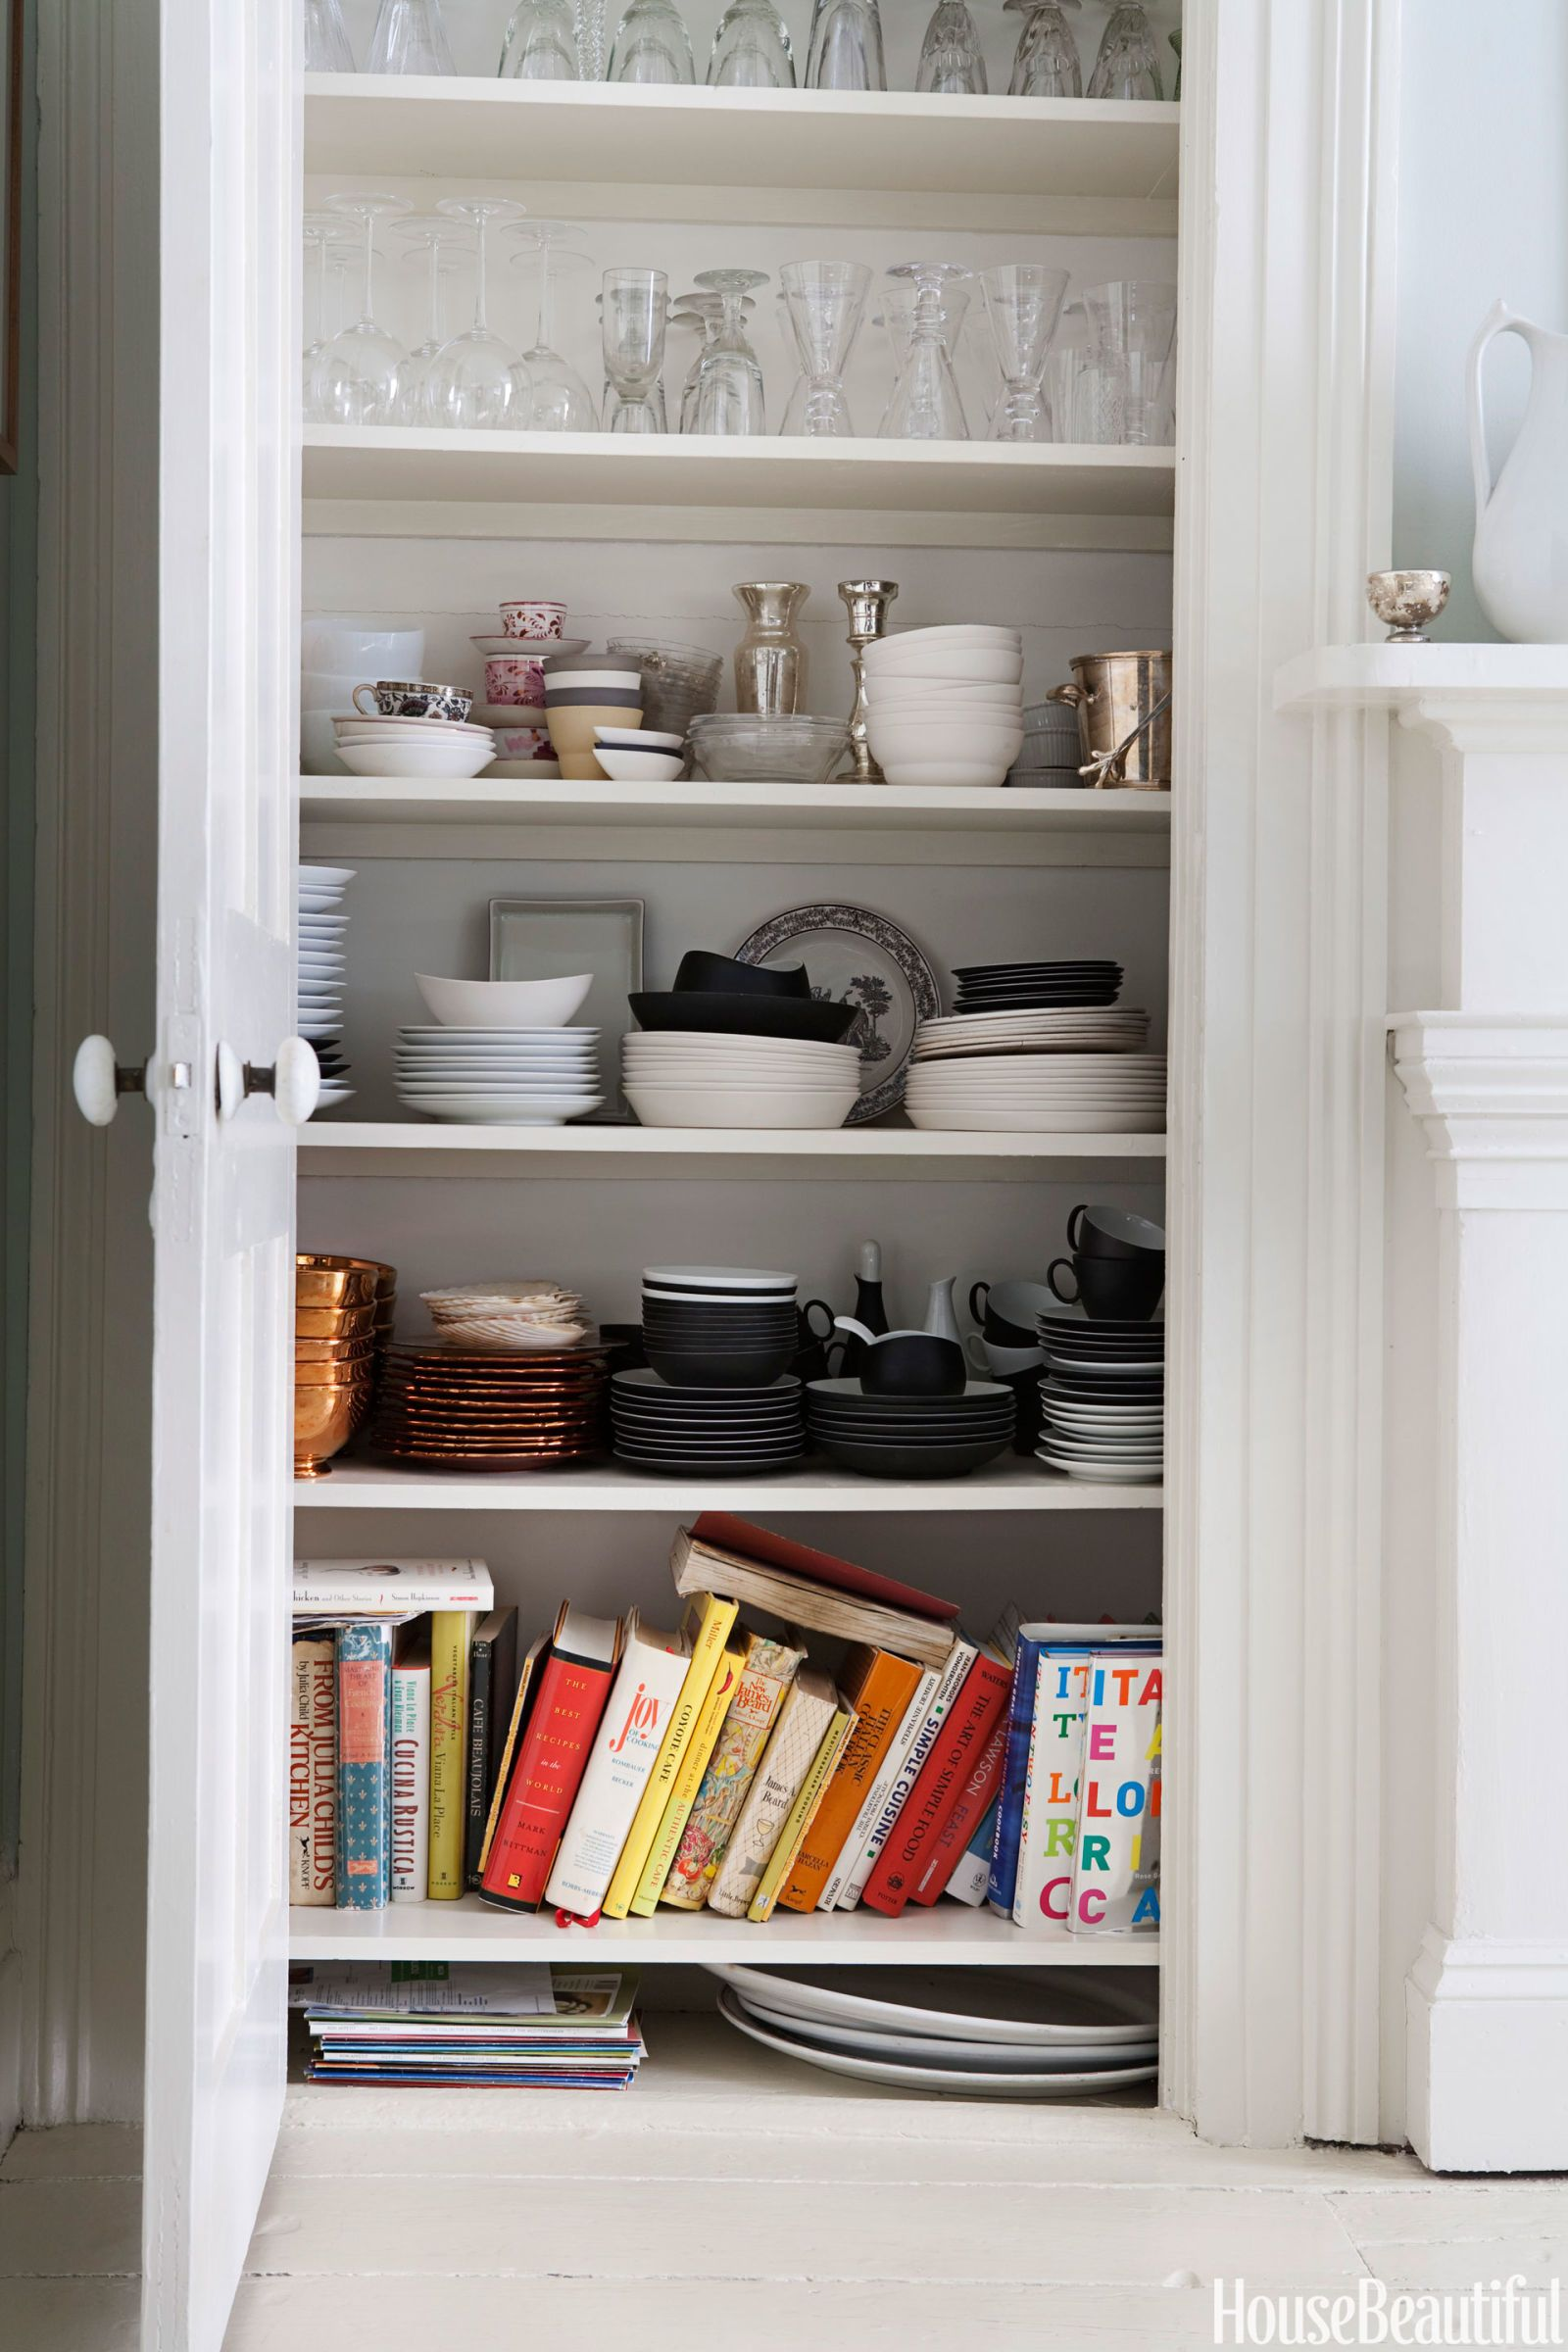 10 Clever Ways to Conceal Clutter